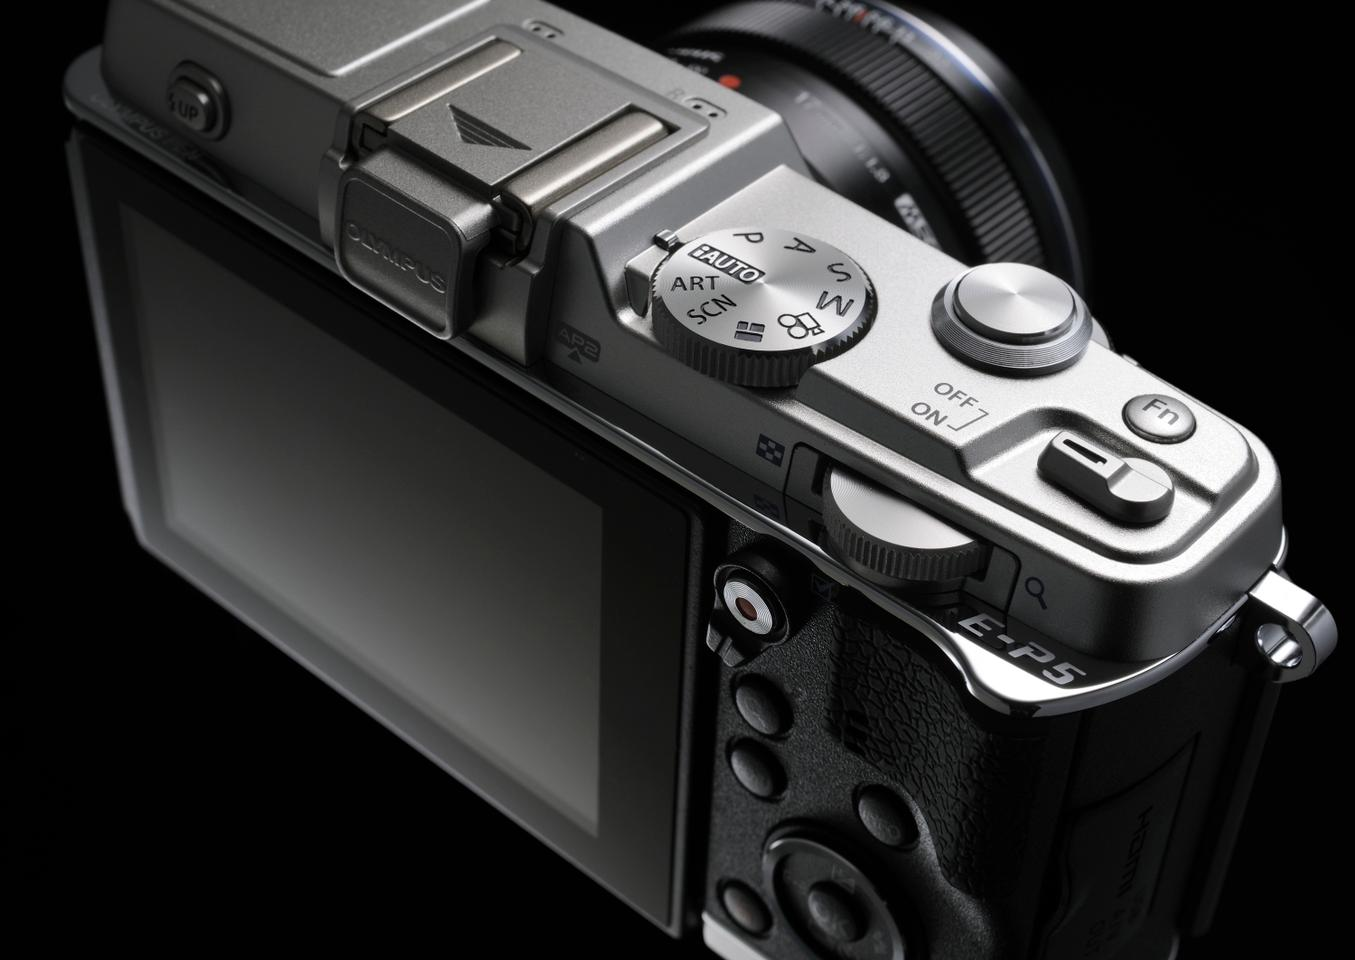 Enthusiasts will be pleased to see the Olympus PEN E-P5 features plenty of physical controls for access to manual settings